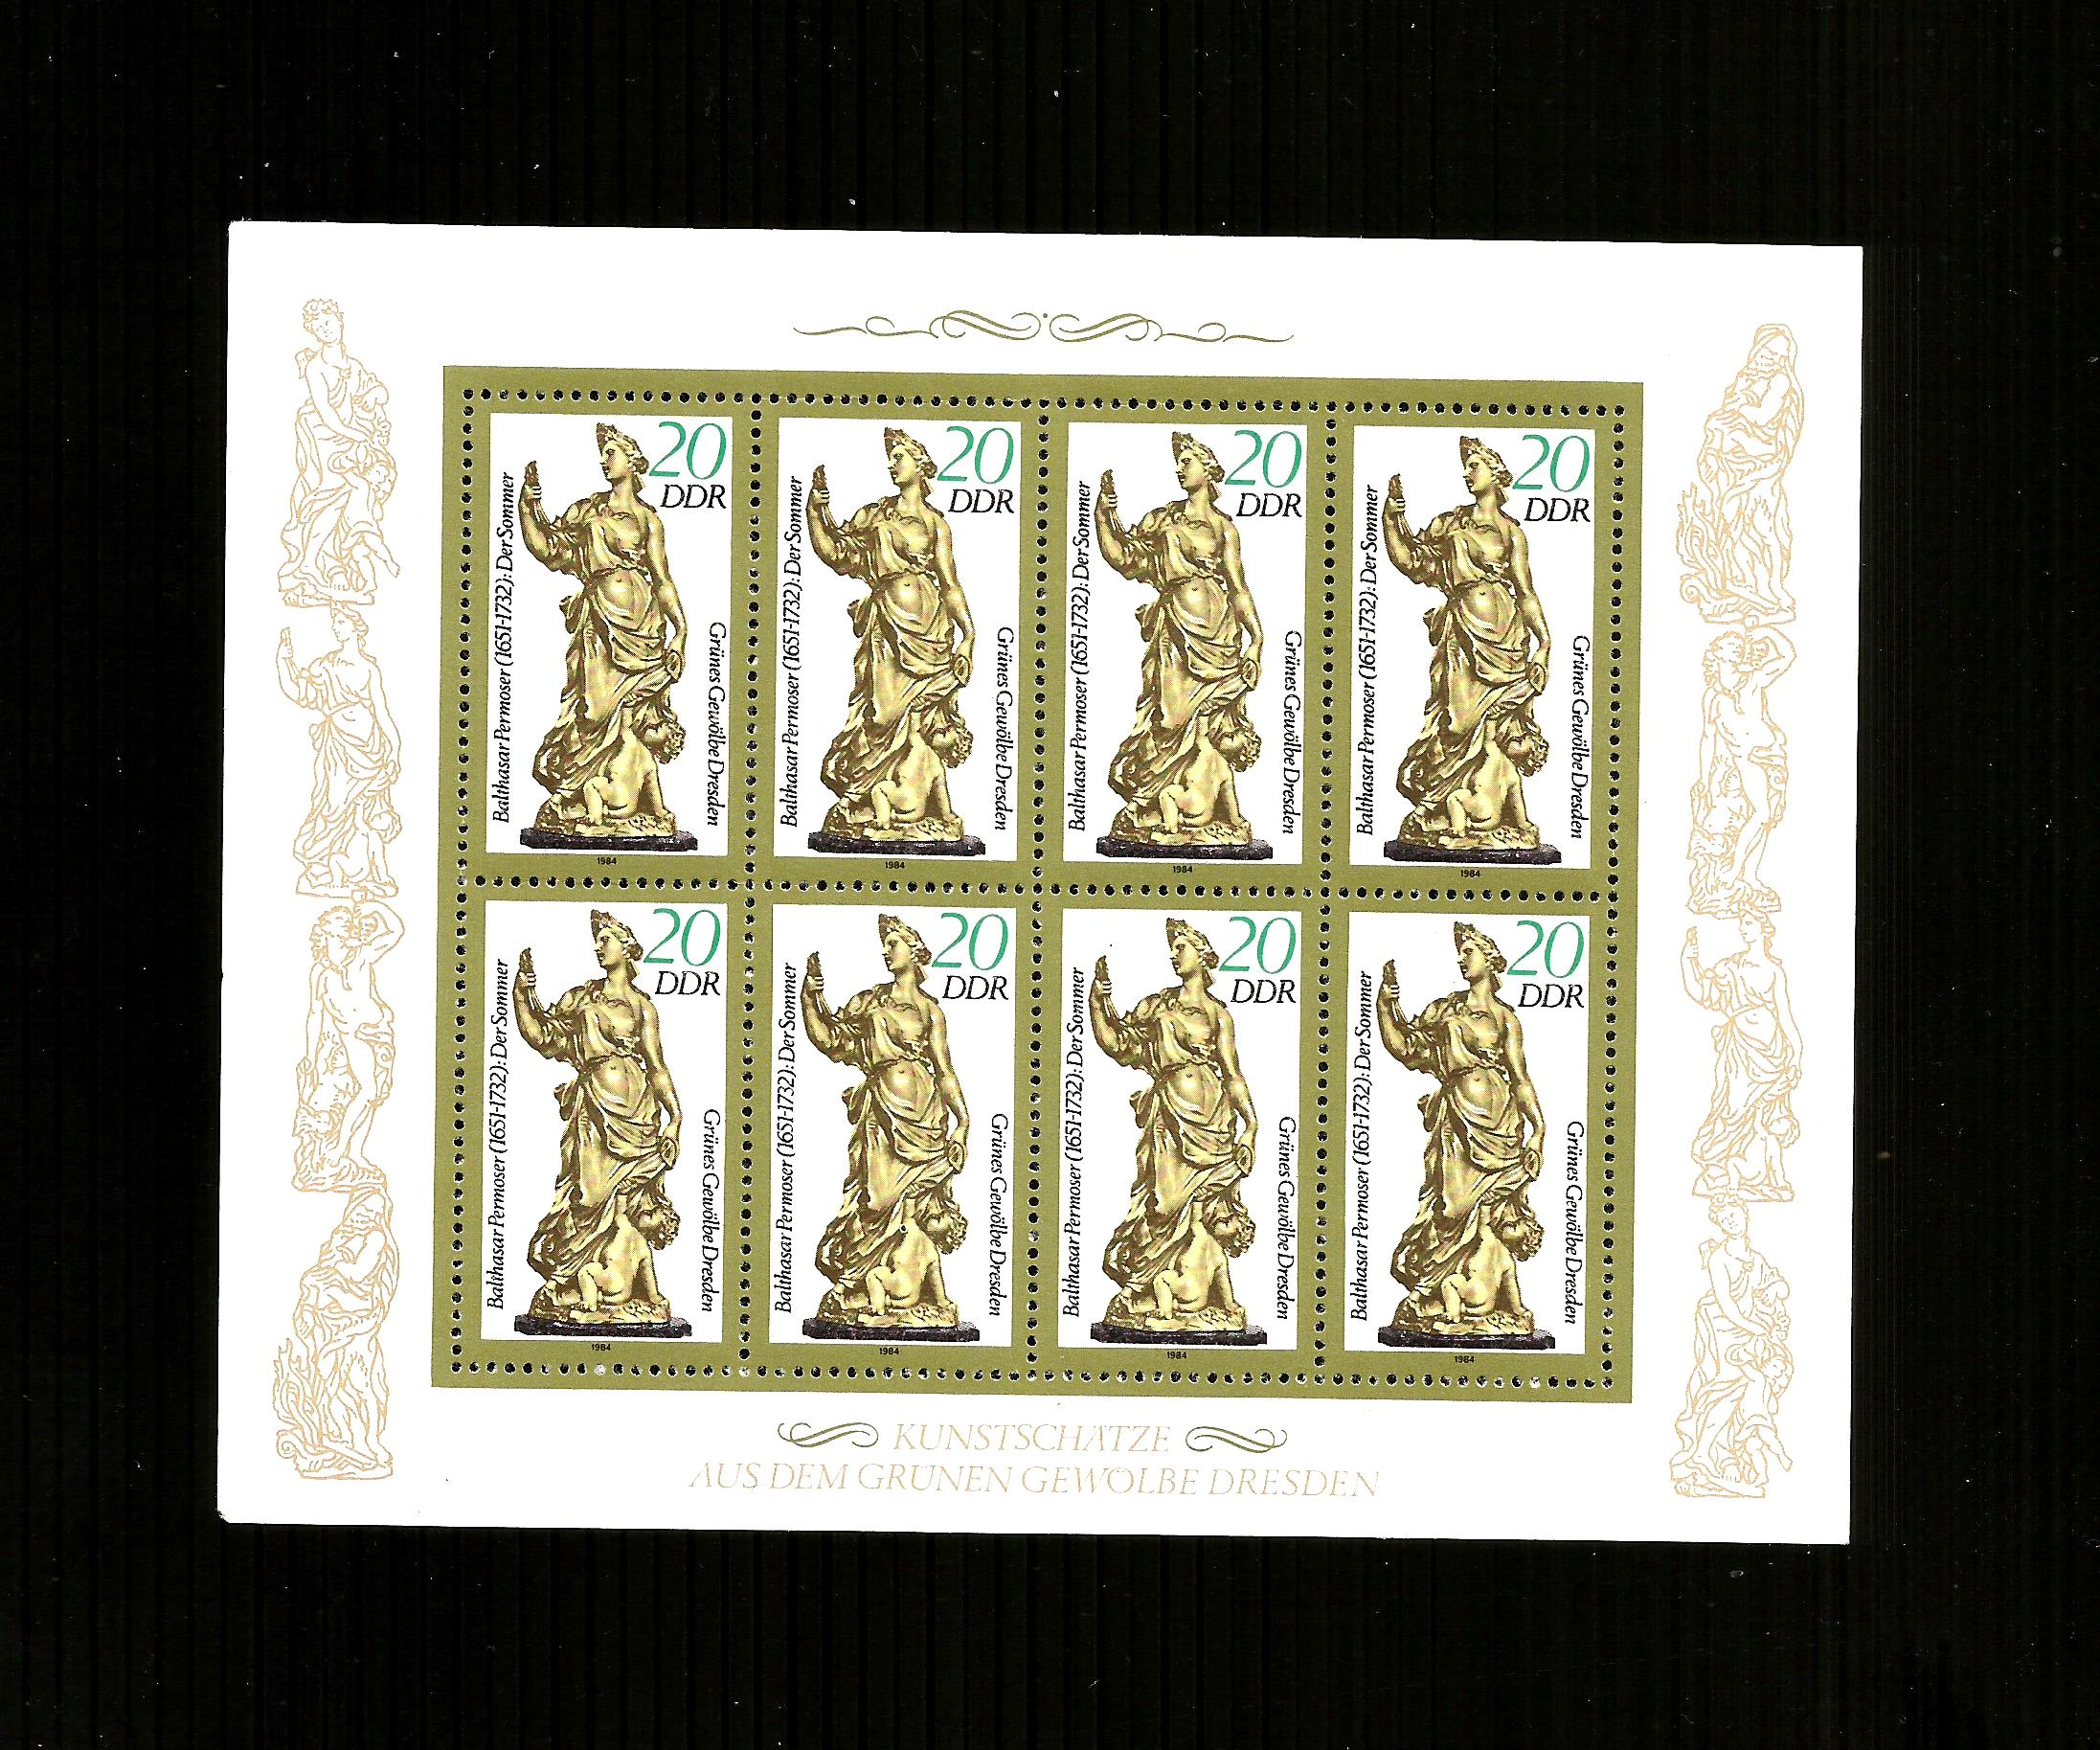 EAST DDR 1984 statuettes in green vaults mini sheets mnh